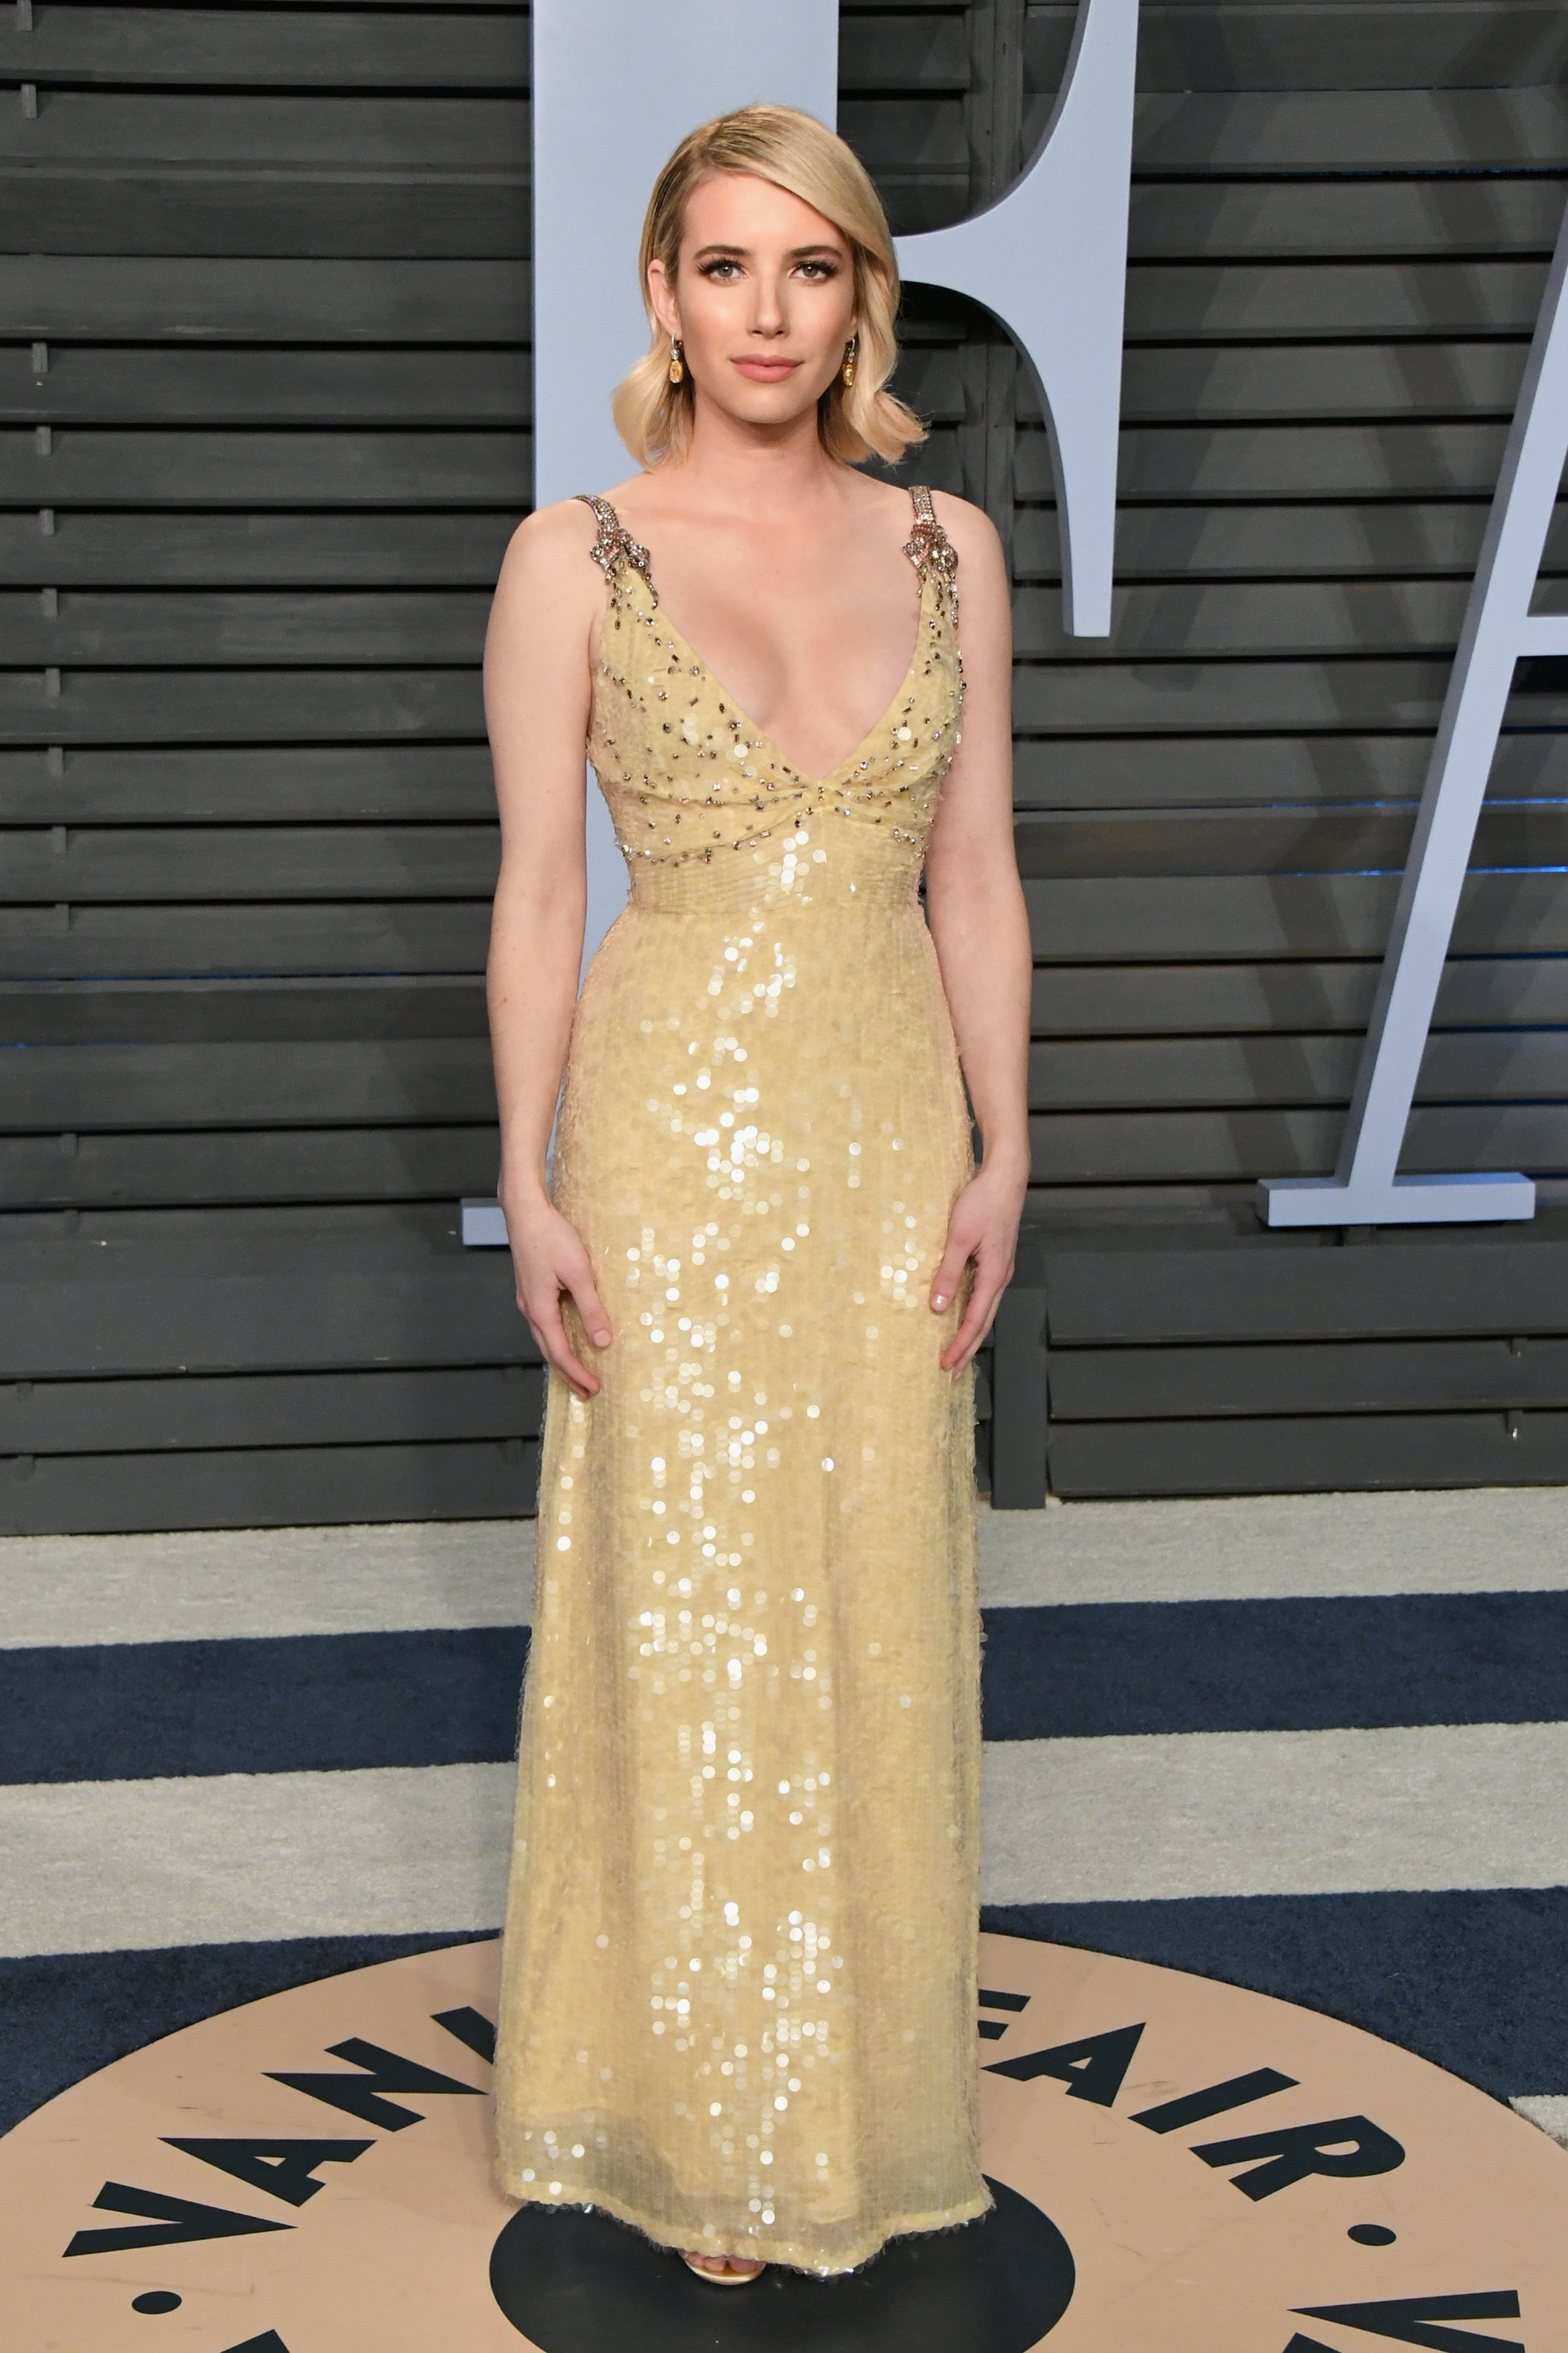 Emma Roberts attends the 2018 Vanity Fair Oscar Party hosted by Radhika Jones at Wallis Annenberg Center for the Performing Arts on March 4, 2018 in Beverly Hills, California | Photo: Getty Images